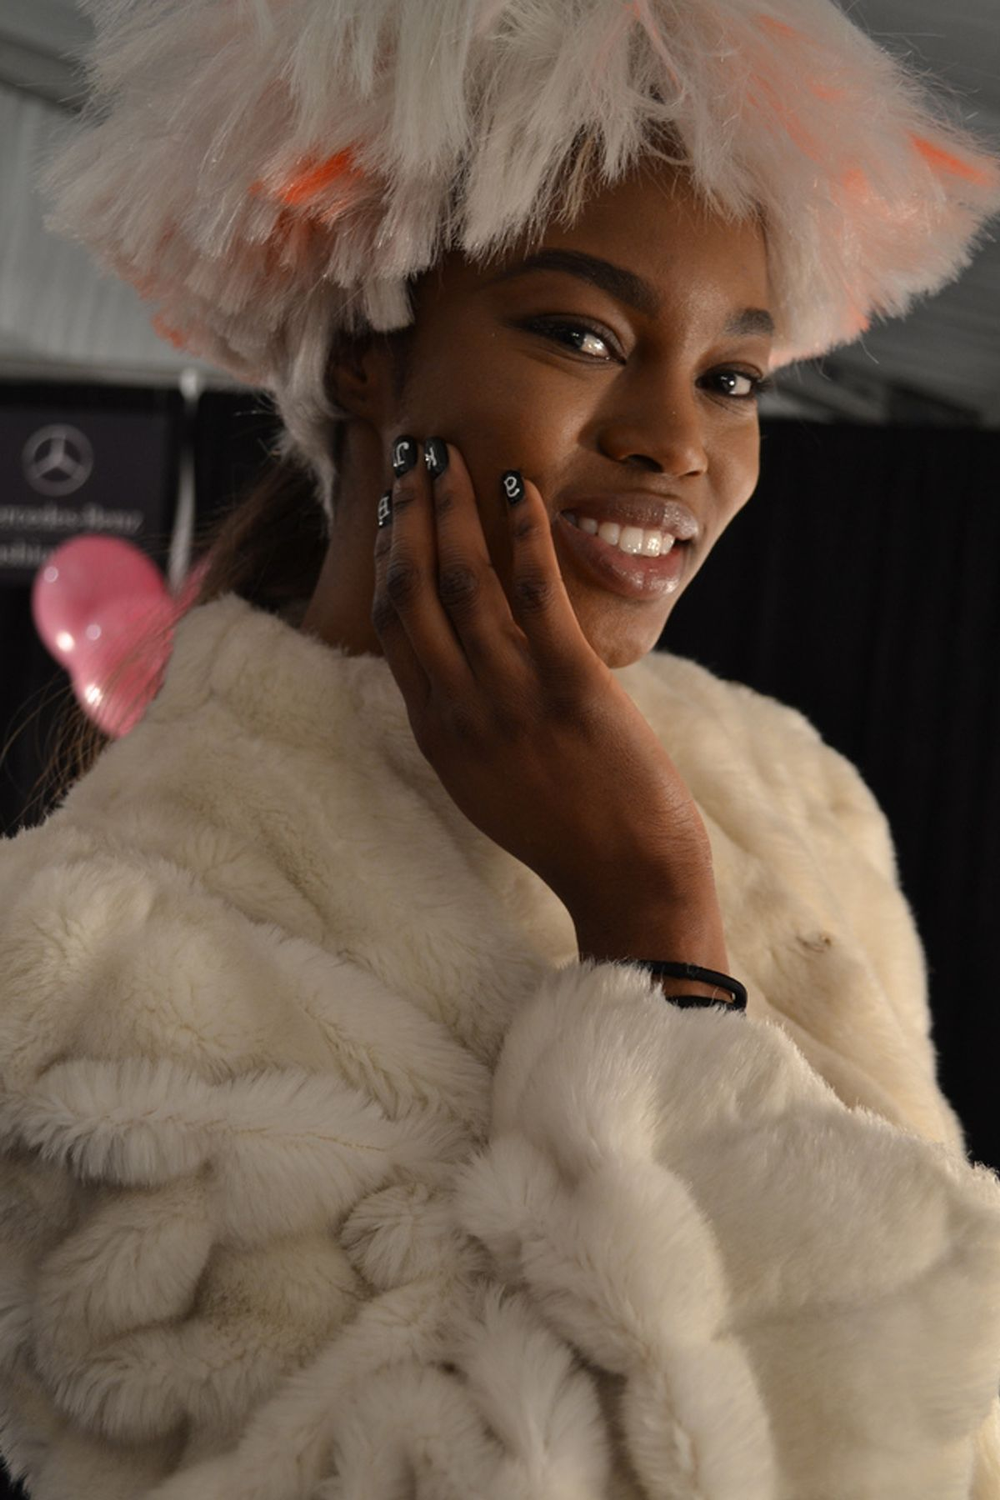 <p>NAIL ART: At the Betsey Johnson show, models wore Morgan Taylor polish, which is a brand new polish line from Hand &amp; Nail Harmony. This model is wearing Morgan Taylor in All White Now and Black Shadow.</p>